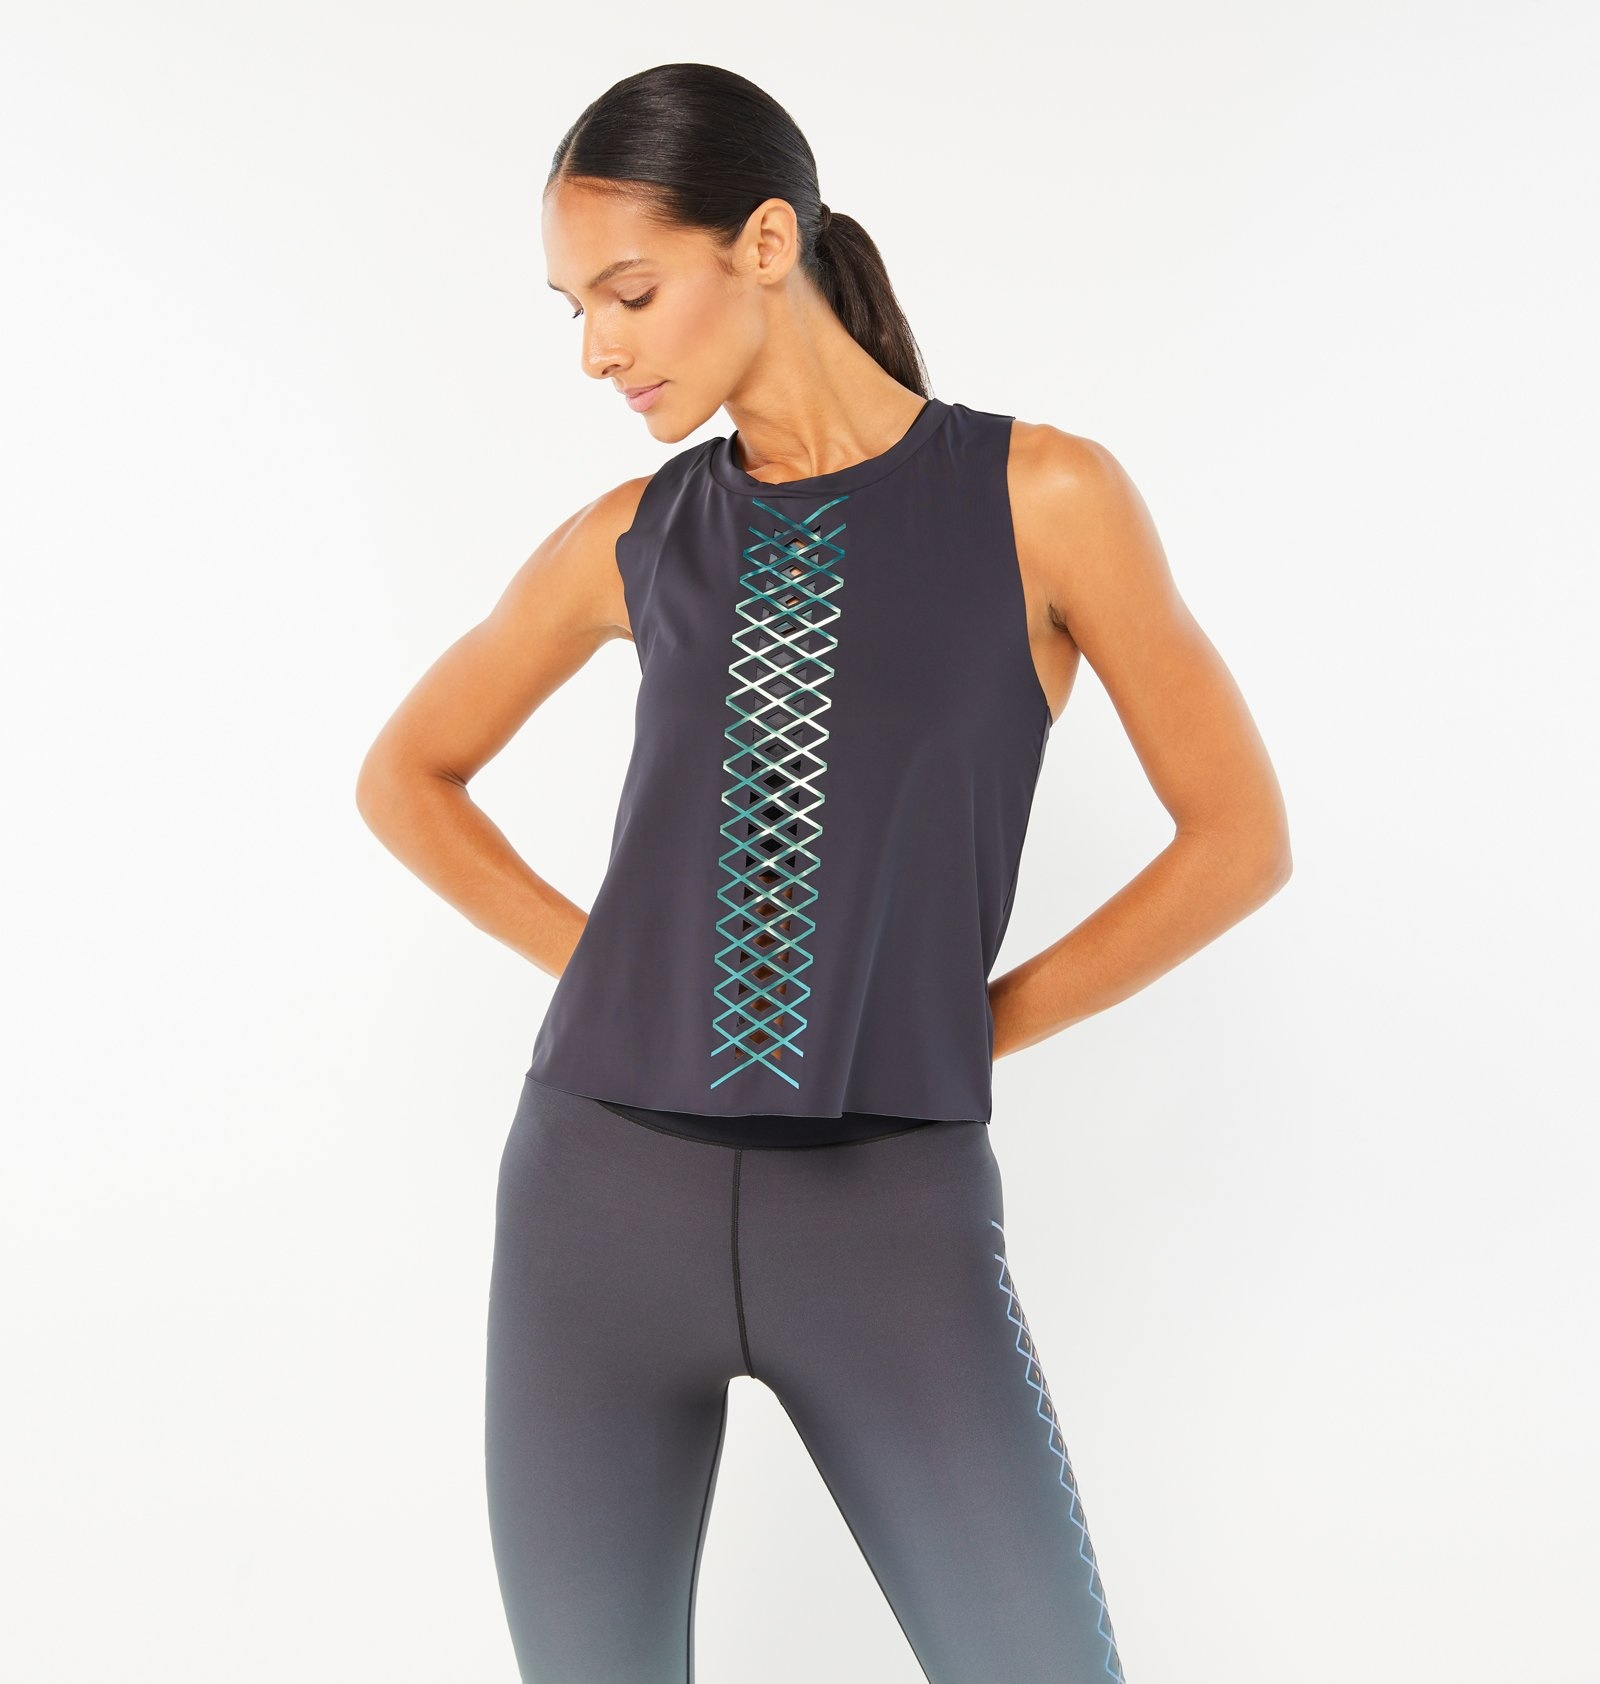 Ultracor Interlace Racerback Tank Nero Peacock